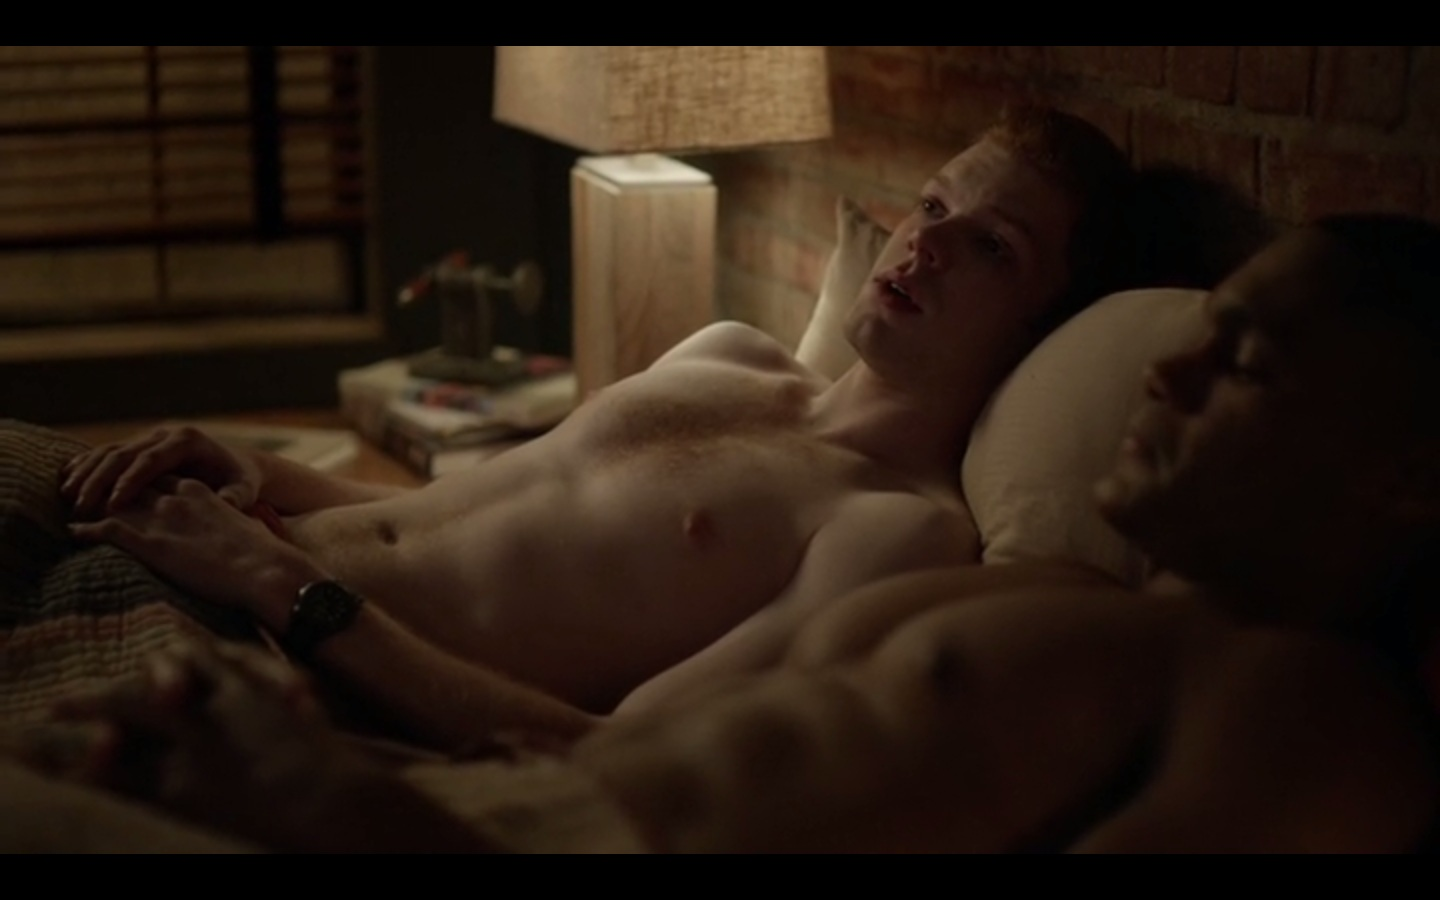 Male celebrity cameron monaghan nude and sexy in picture